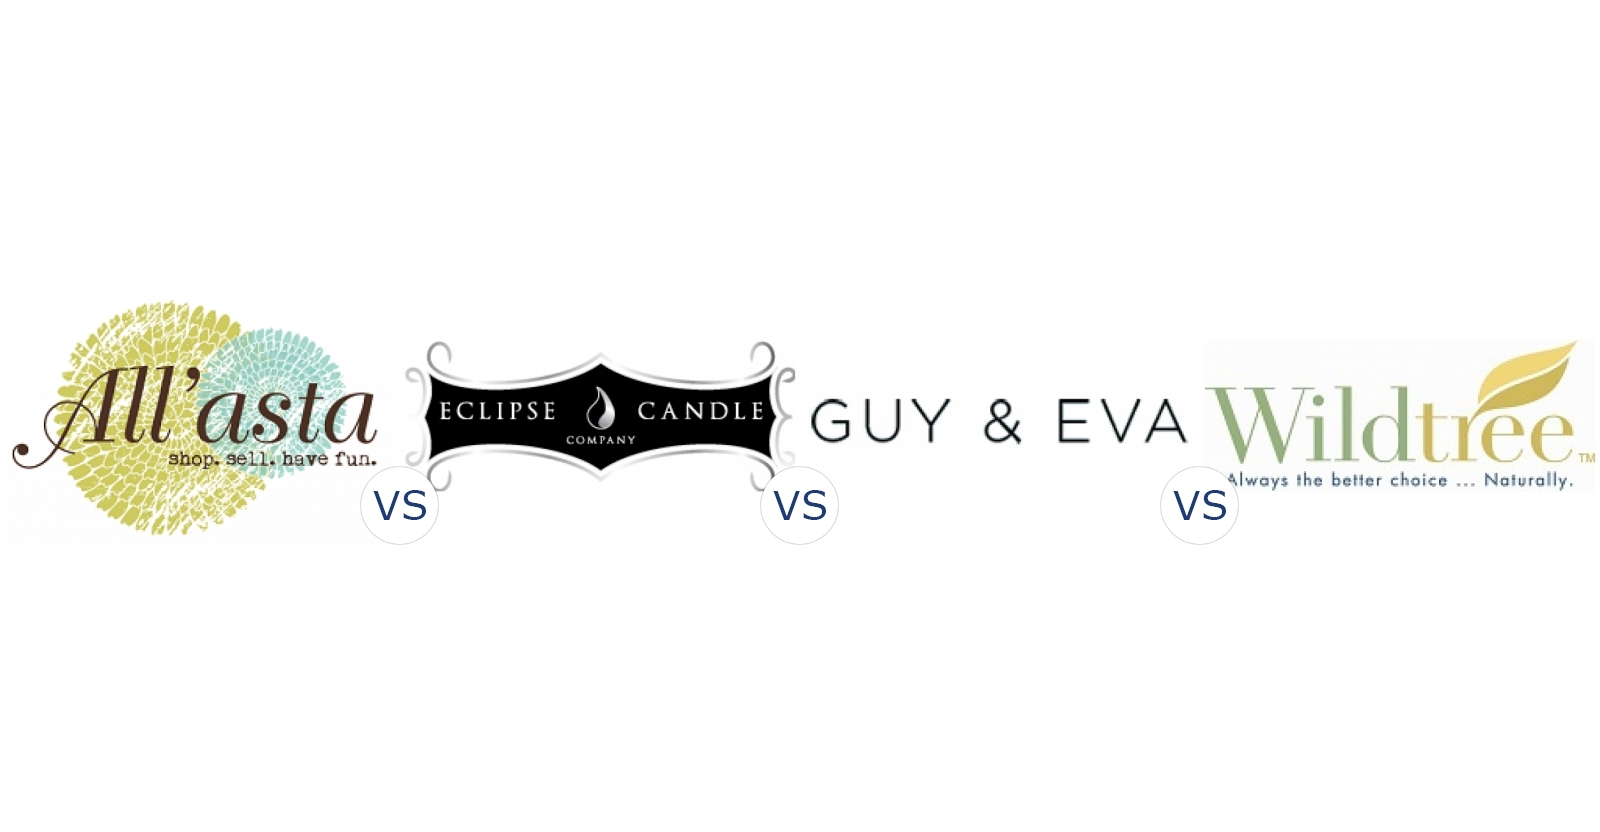 All'asta vs. Eclipse Candle Company vs. Guy & Eva vs. Wildtree